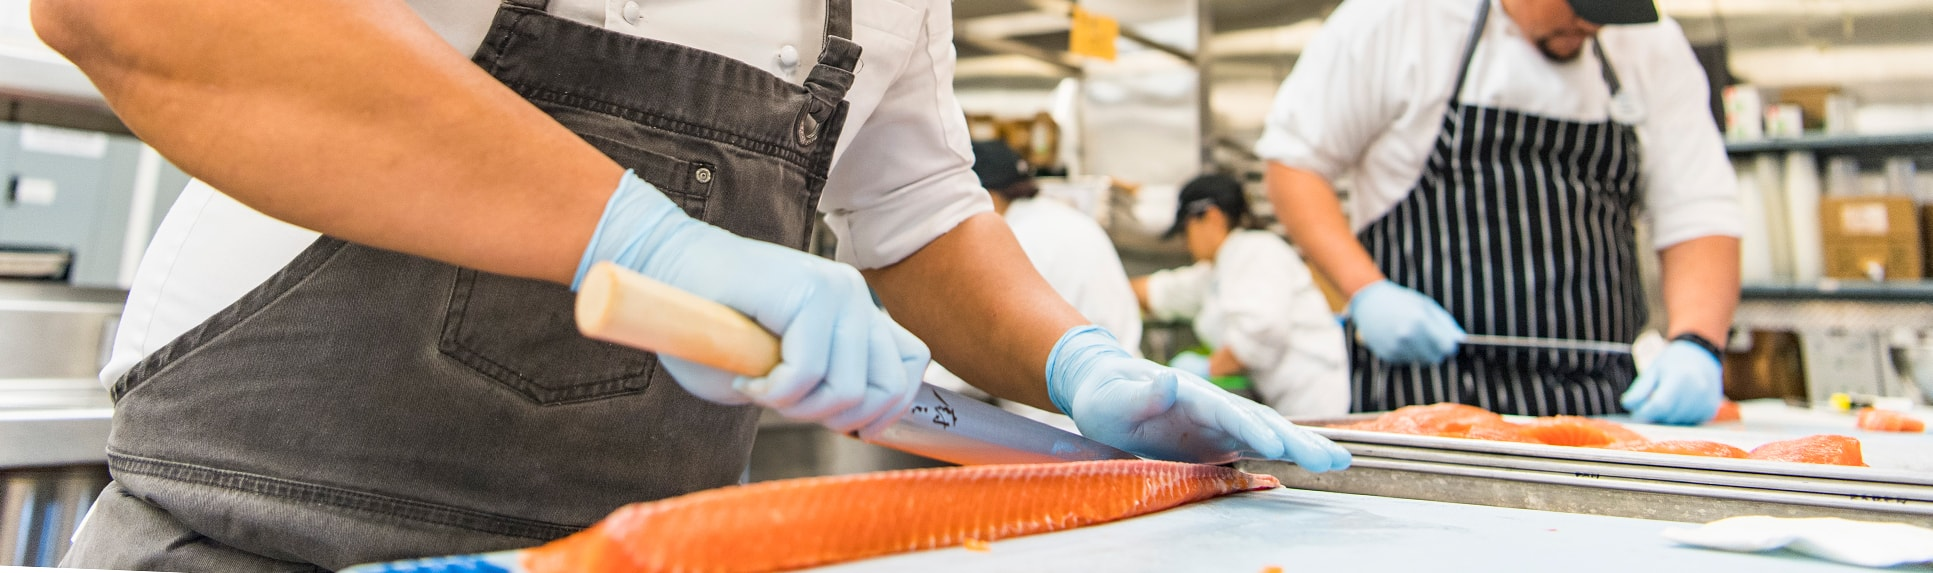 Cooks slice fish and work in a kitchen